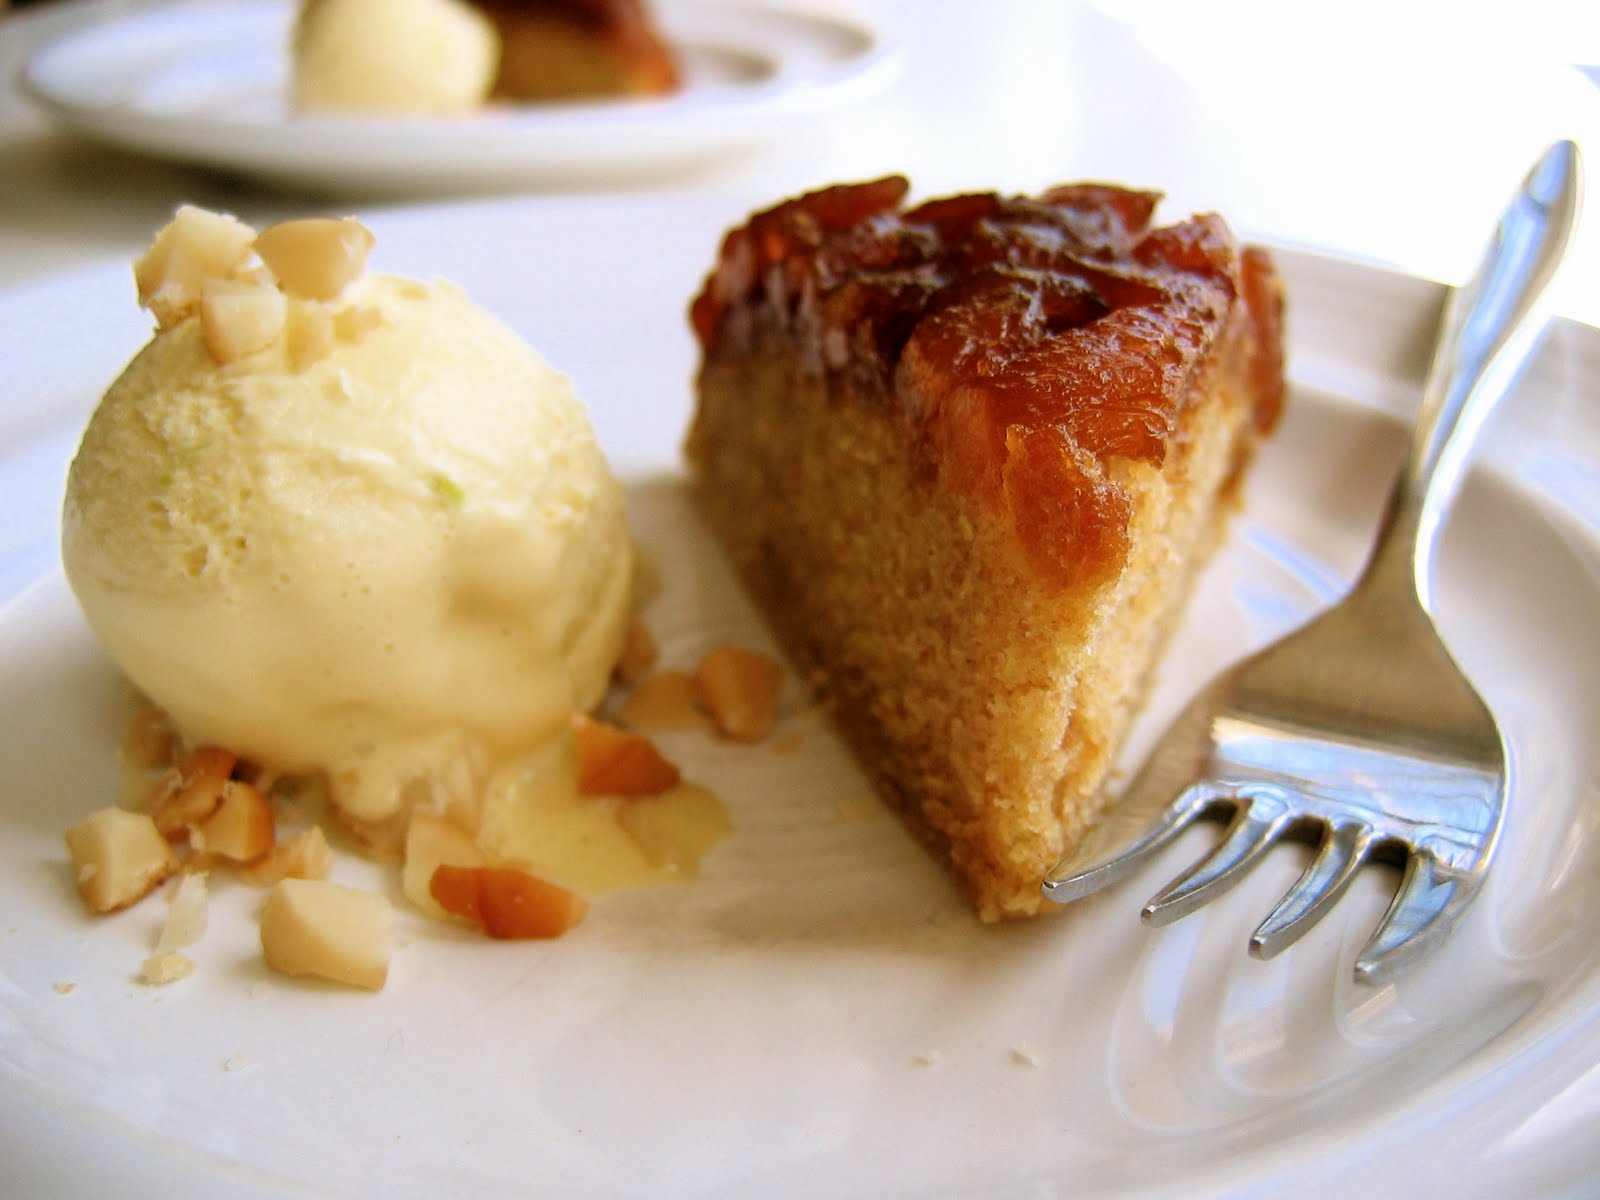 ... : Ginger Pineapple Upside-Down Cake, Coconut-Lemongrass Ice Cream